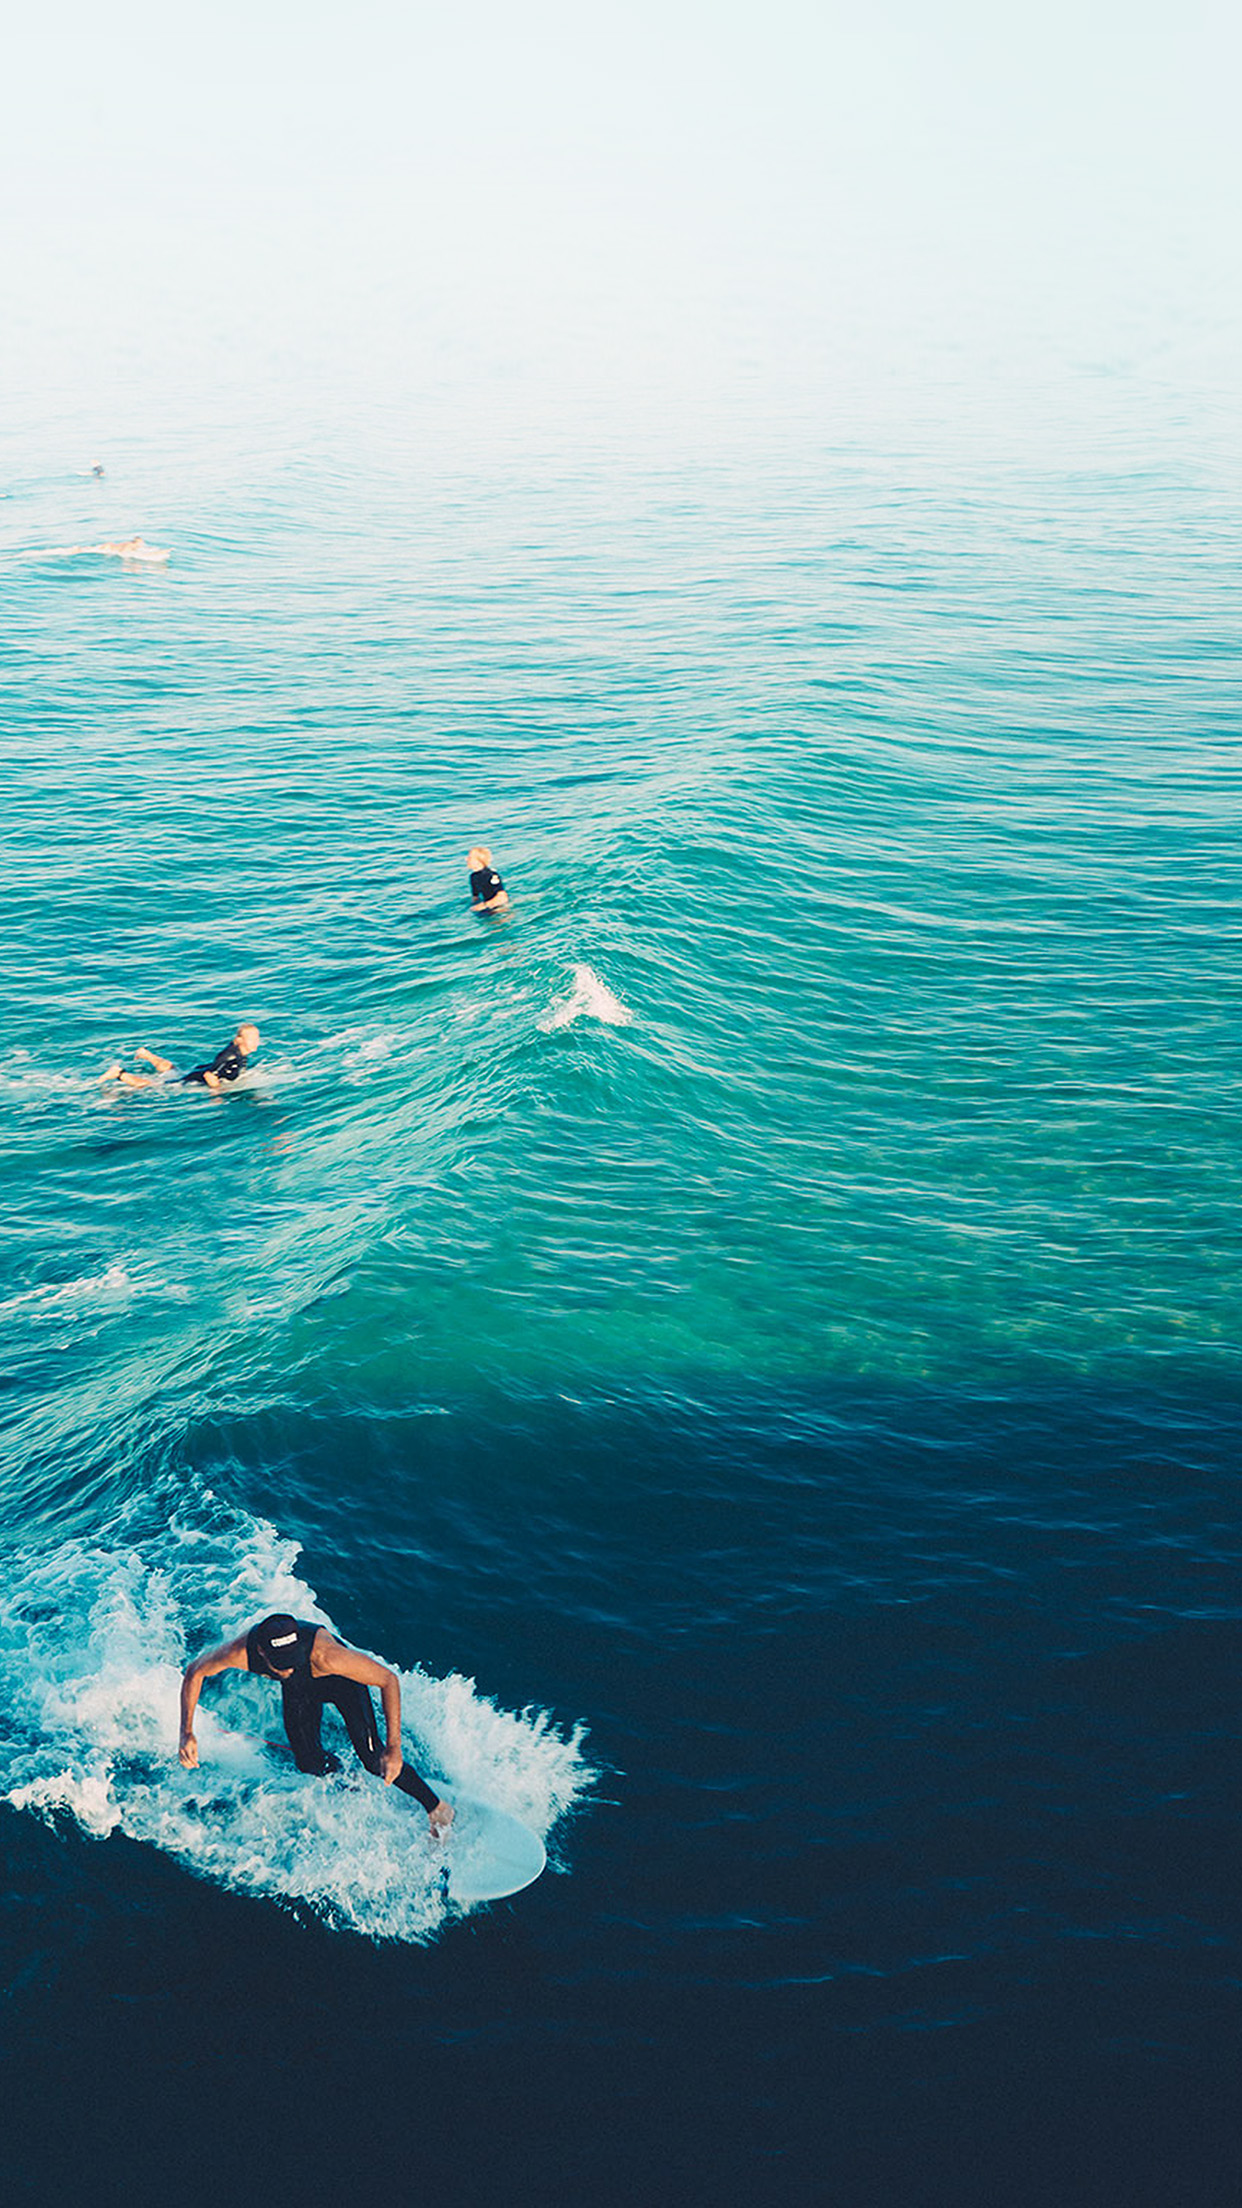 ms58-surfing-wave-summer-sea-ocean-blue - Papers.co